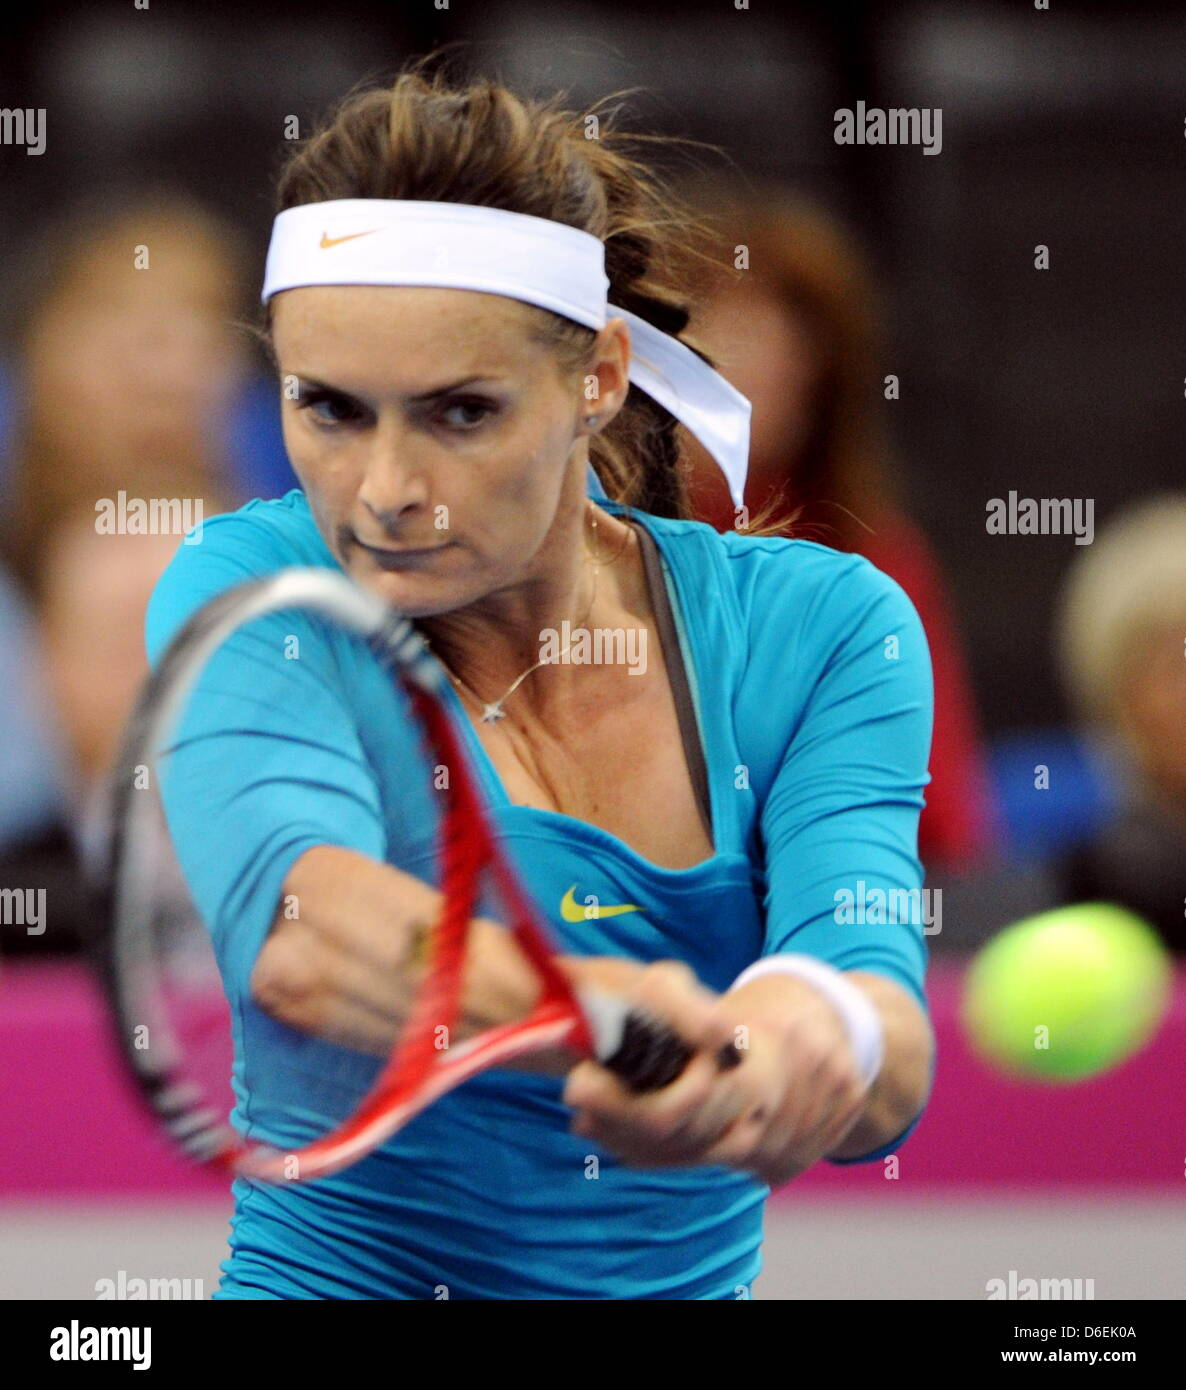 Czech tennis professional Iveta Benesova competes against Germany's Sabine Lisicki during the Fed Cup quarter - Stock Image